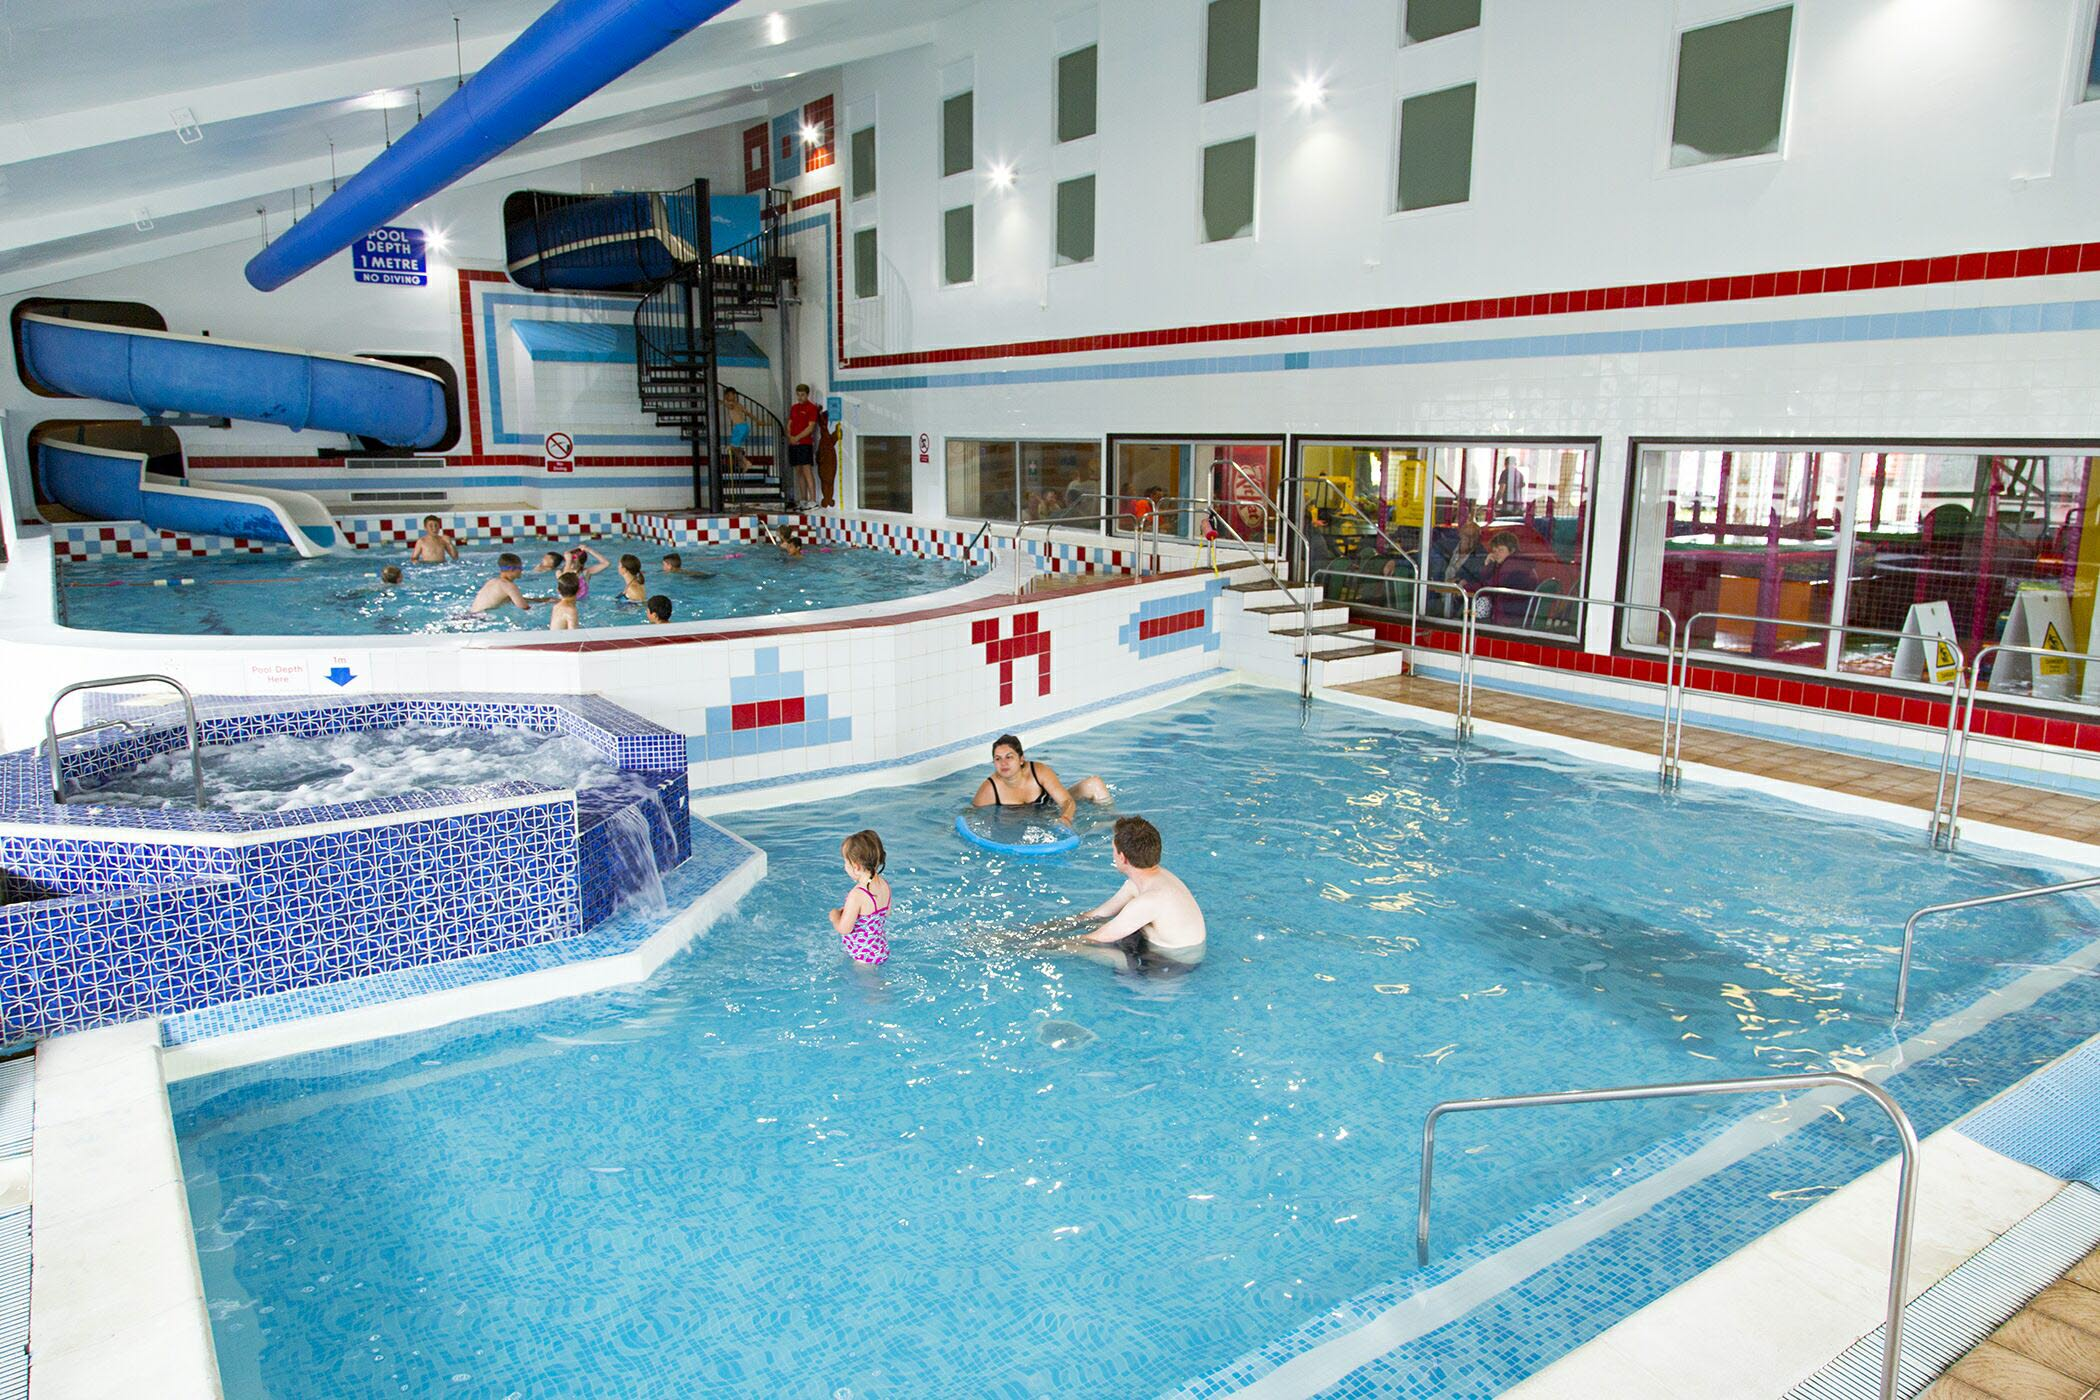 Whitecliff Bay Holiday Park indoor pool, Bembridge Isle of Wight